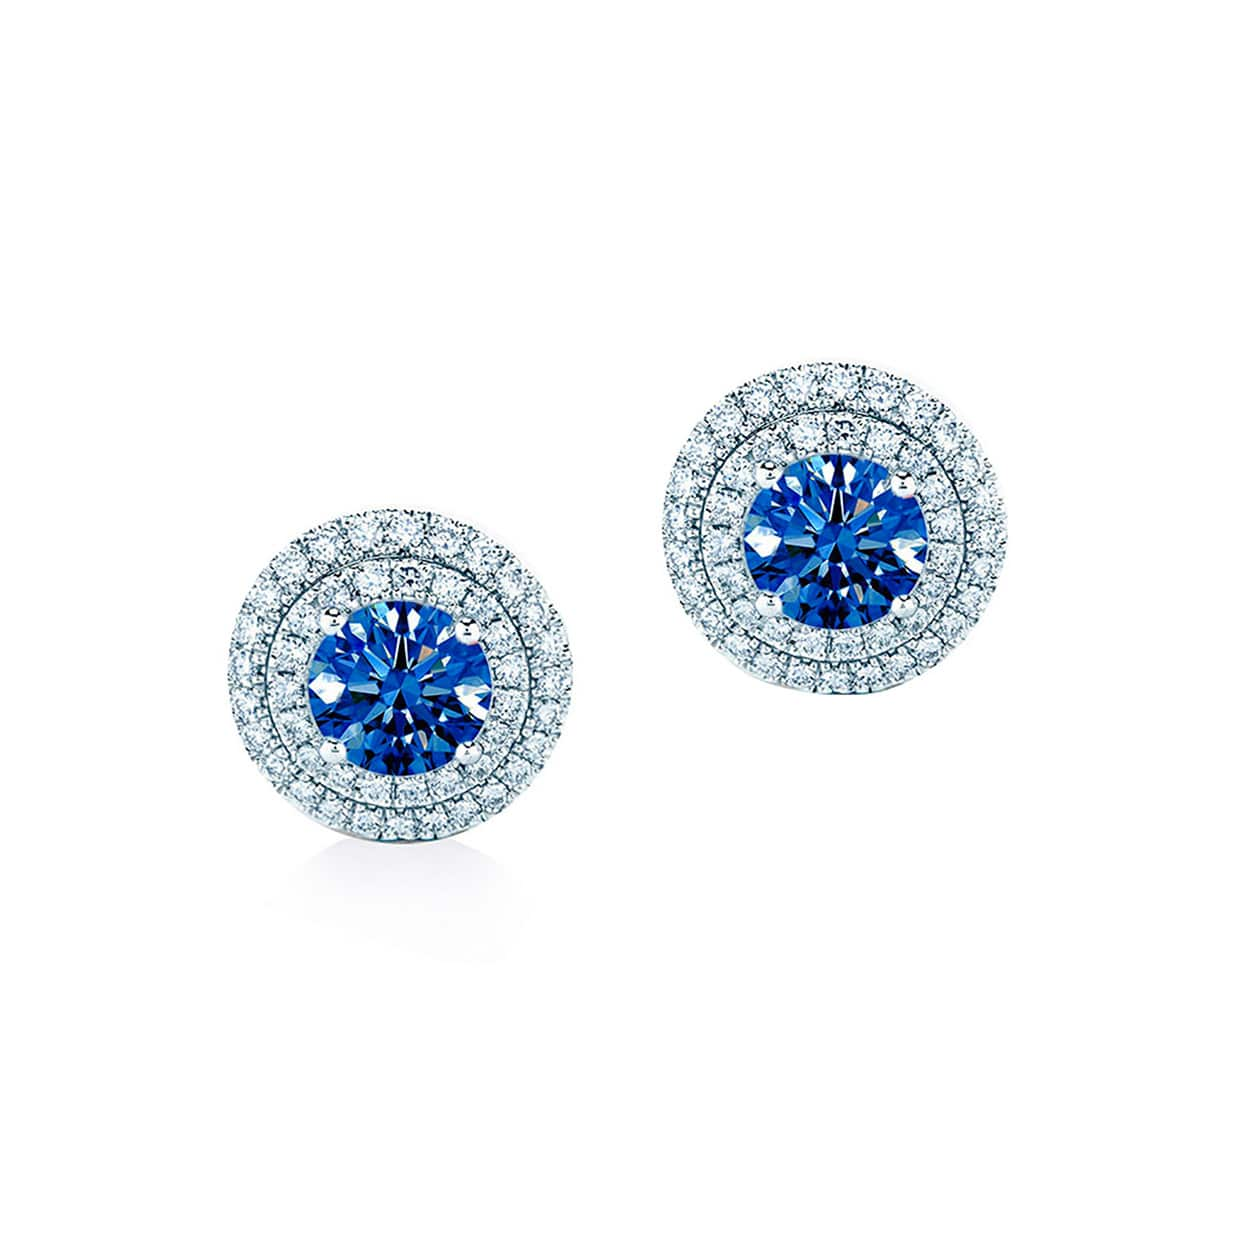 Oxford Double Halo Sapphire Blue Earrings - Abelstedt